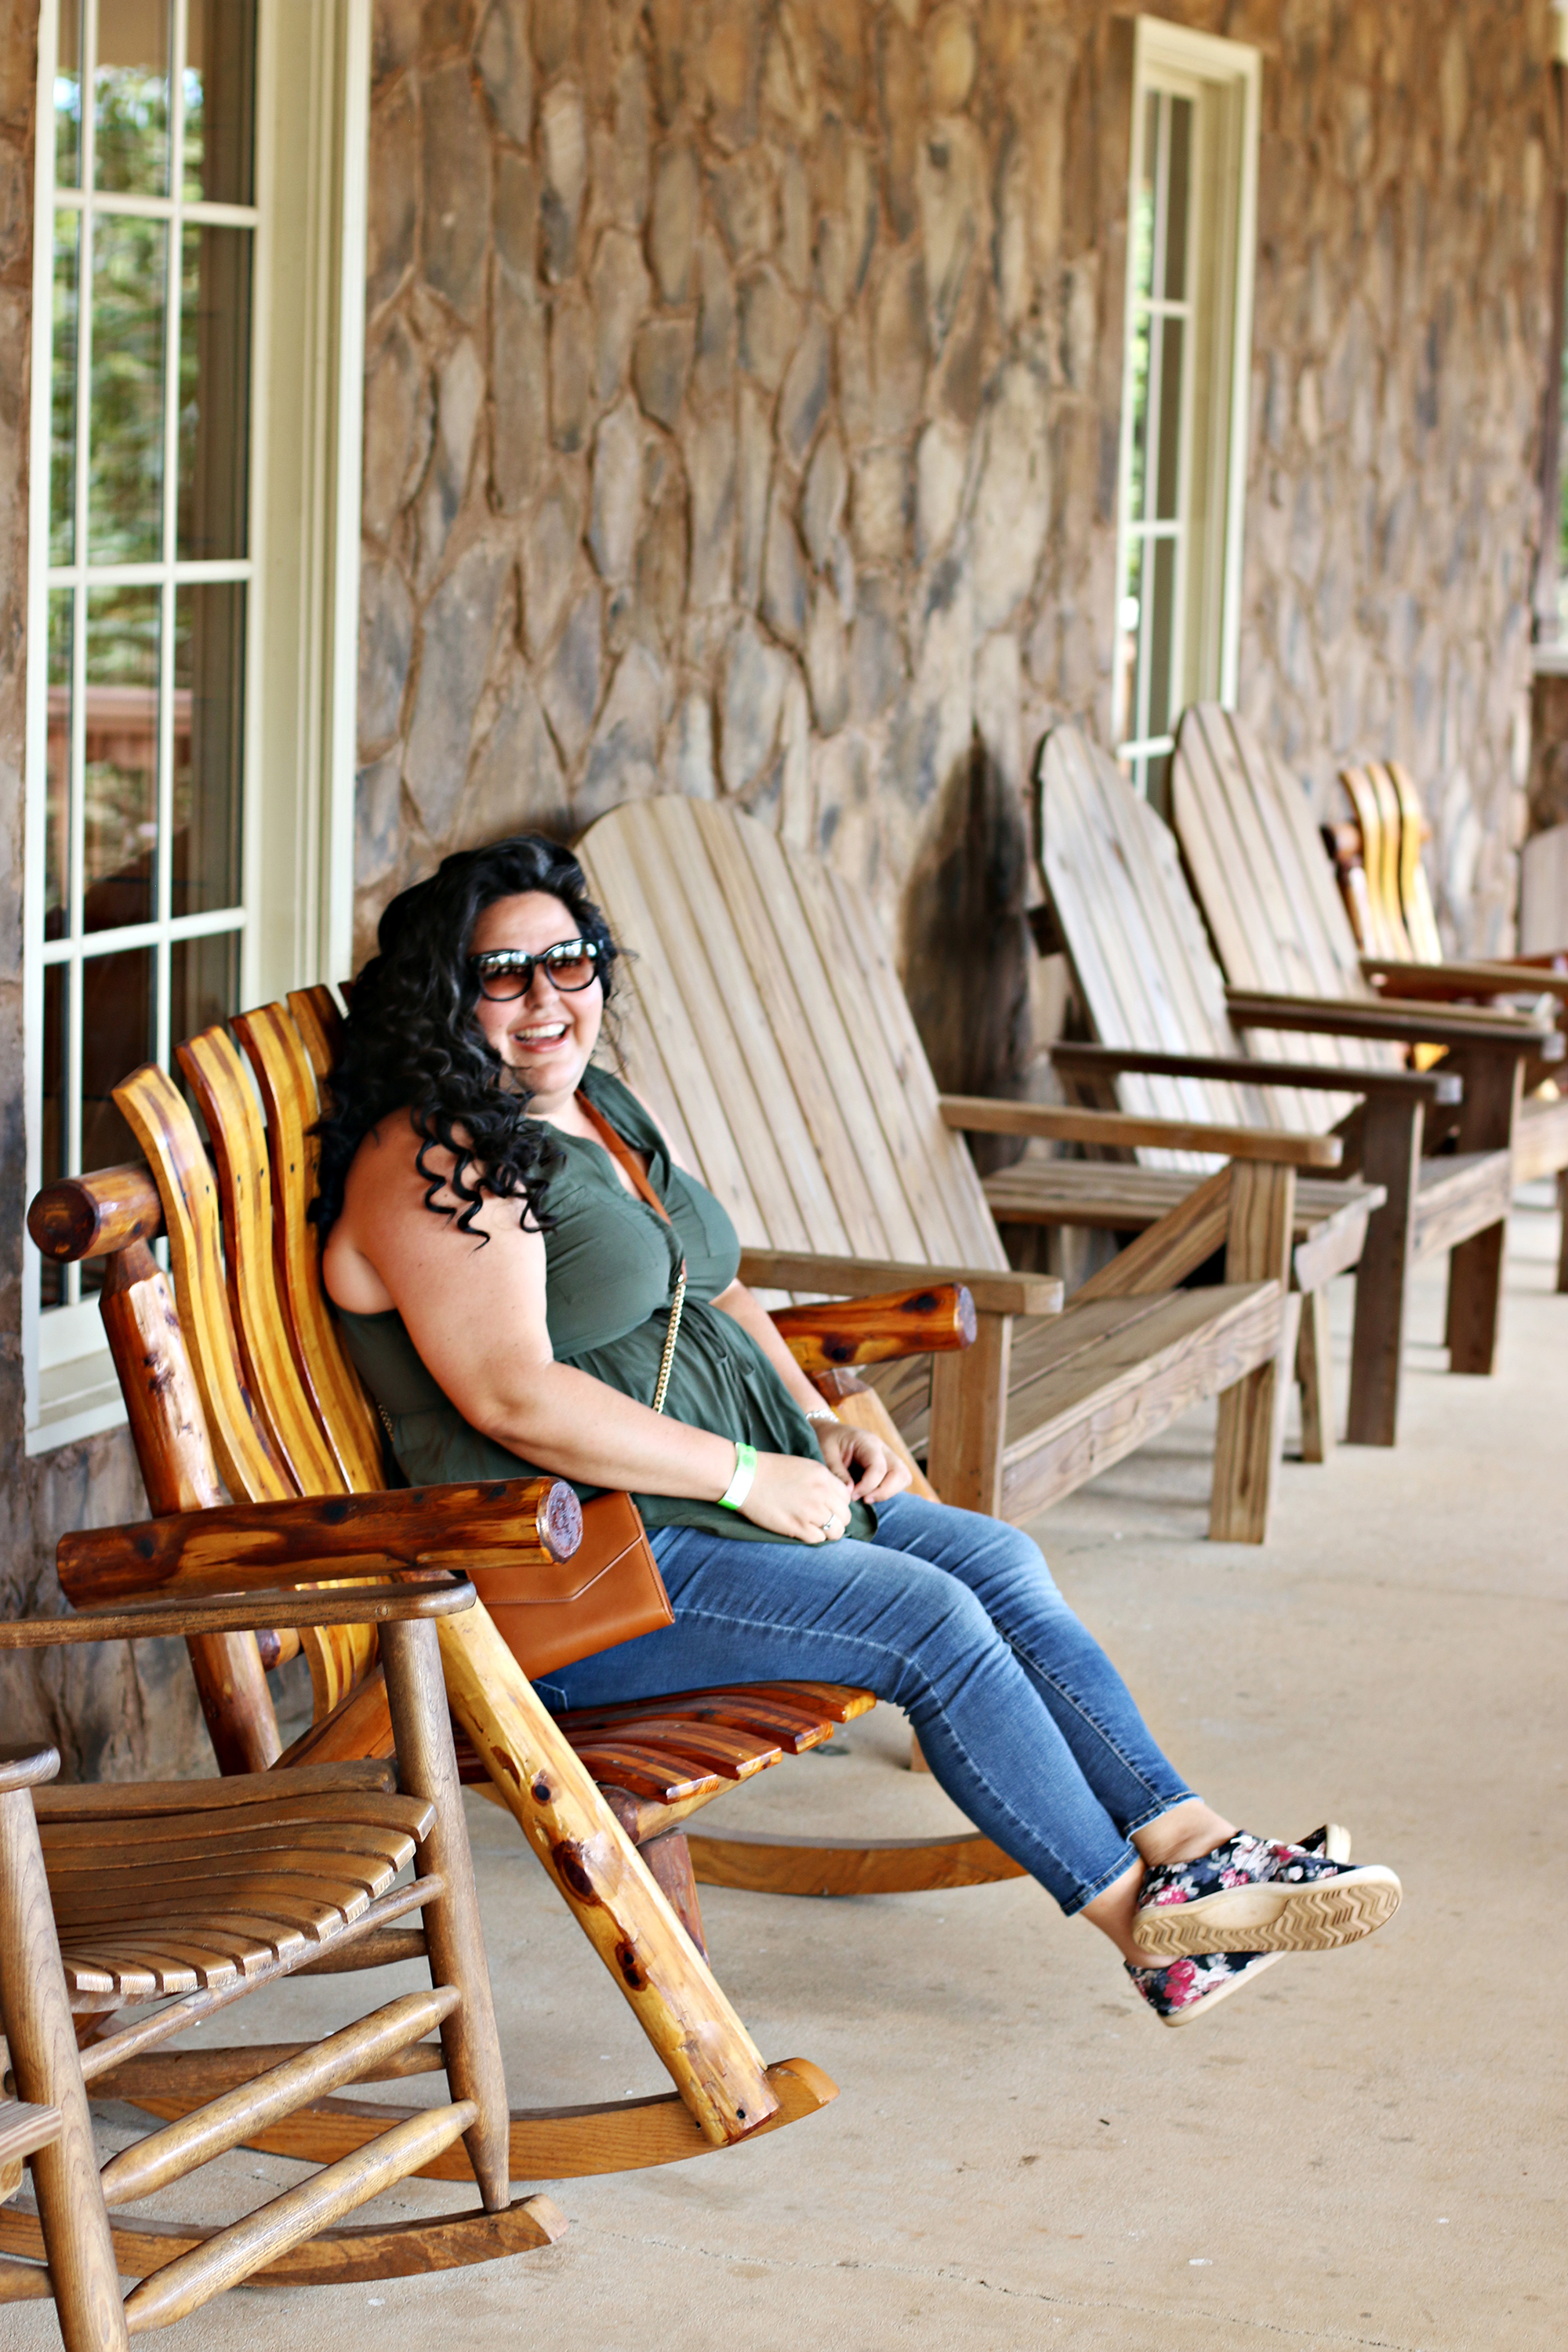 Woman smiling and rocking in a rocking chair at The Rock Ranch.